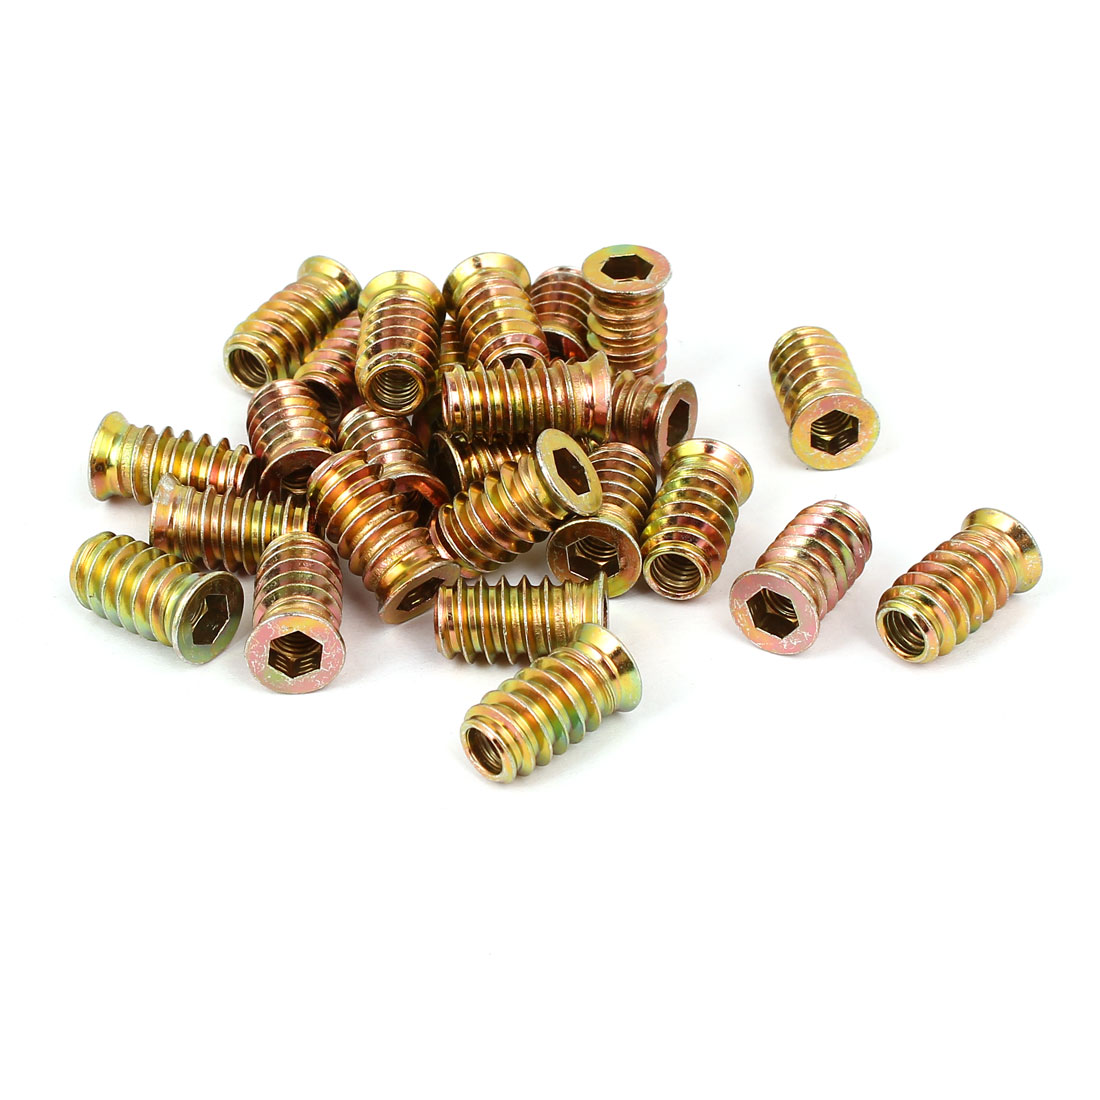 6mm x 20mm Wood Furniture Insert Interface E-Nut Hex Socket Threaded Nut 25PCS